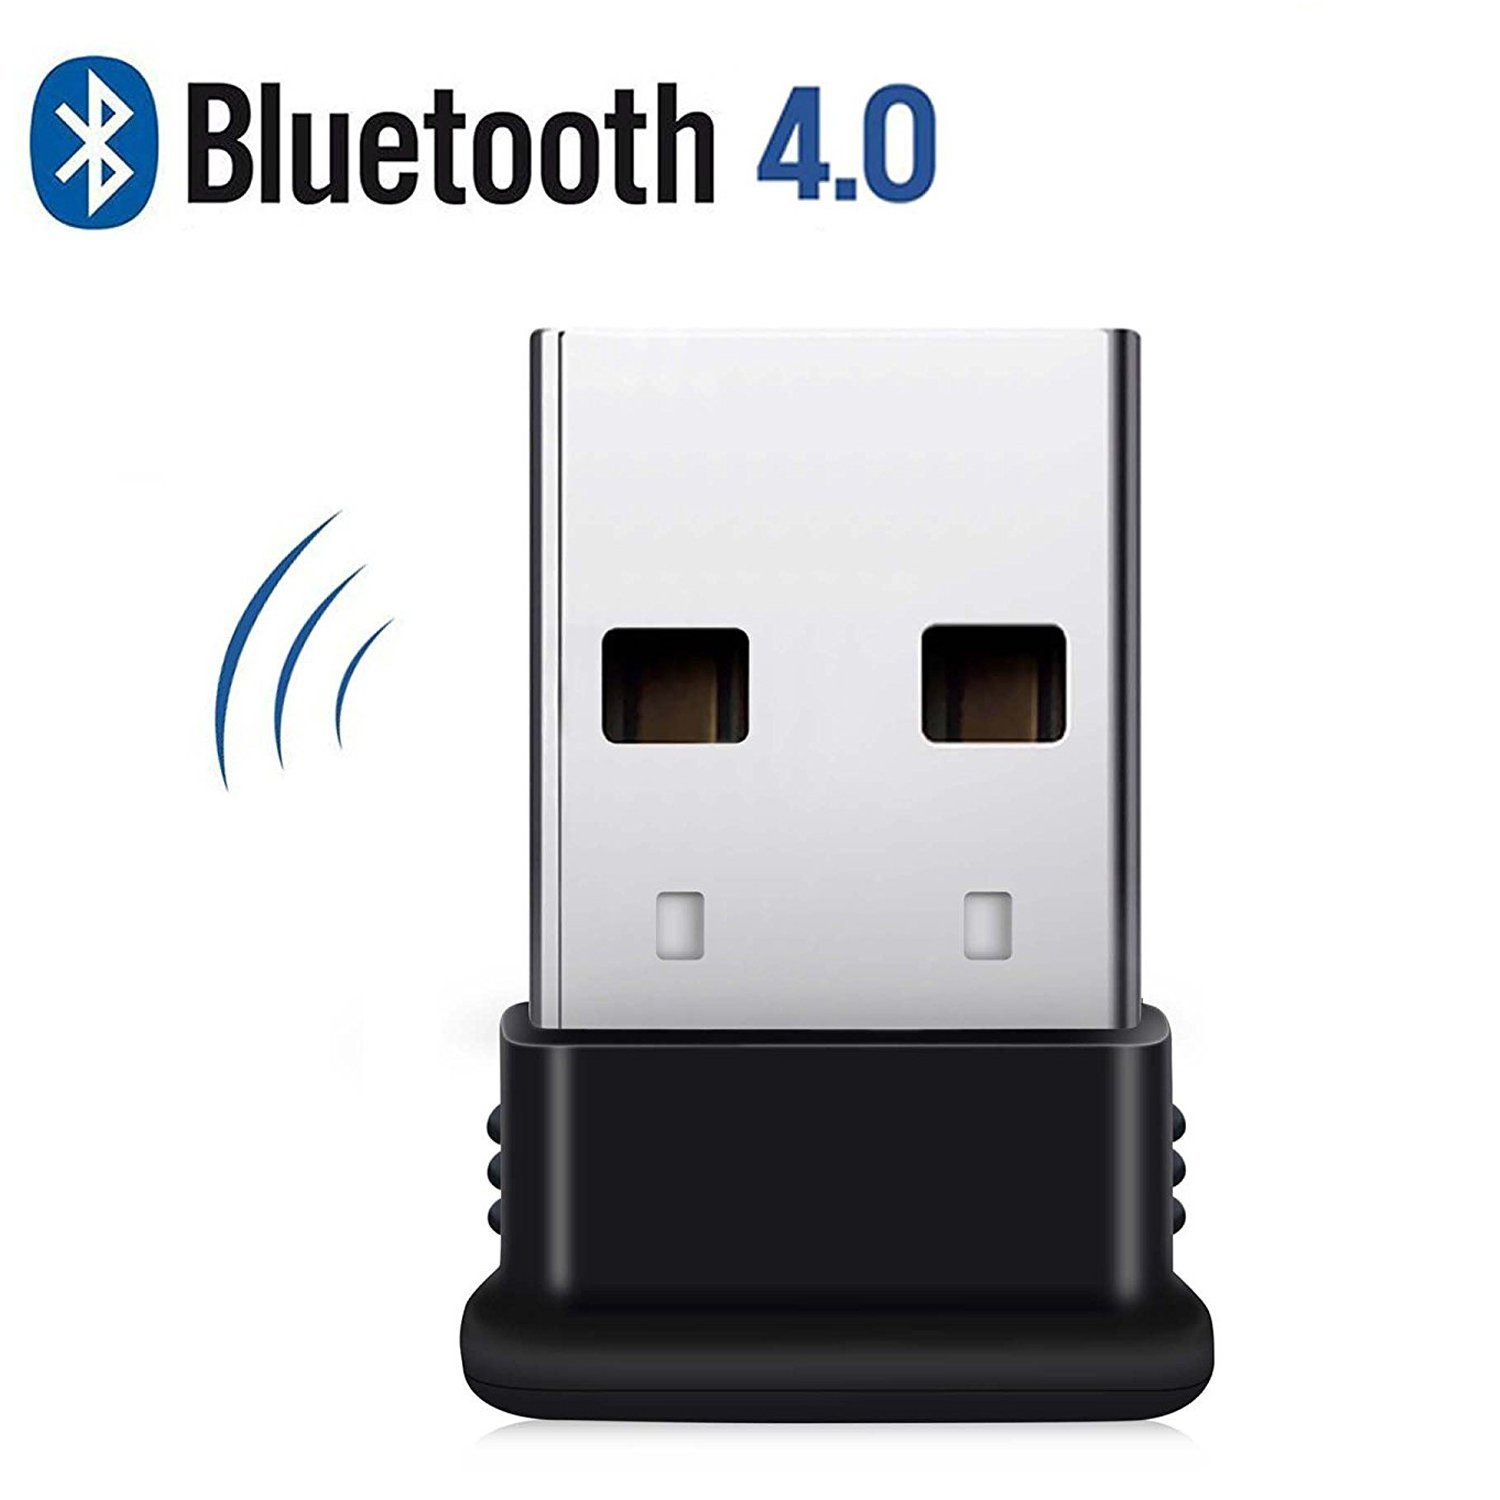 Bluetooth USB Adapter, 4.0 USB Bluetooth Dongle for desktop,Windows 10/8.1/8, Vista and XP, Devices with 2.4Ghz range by KEY IDEA (Black) by KEY IDEA (Image #2)